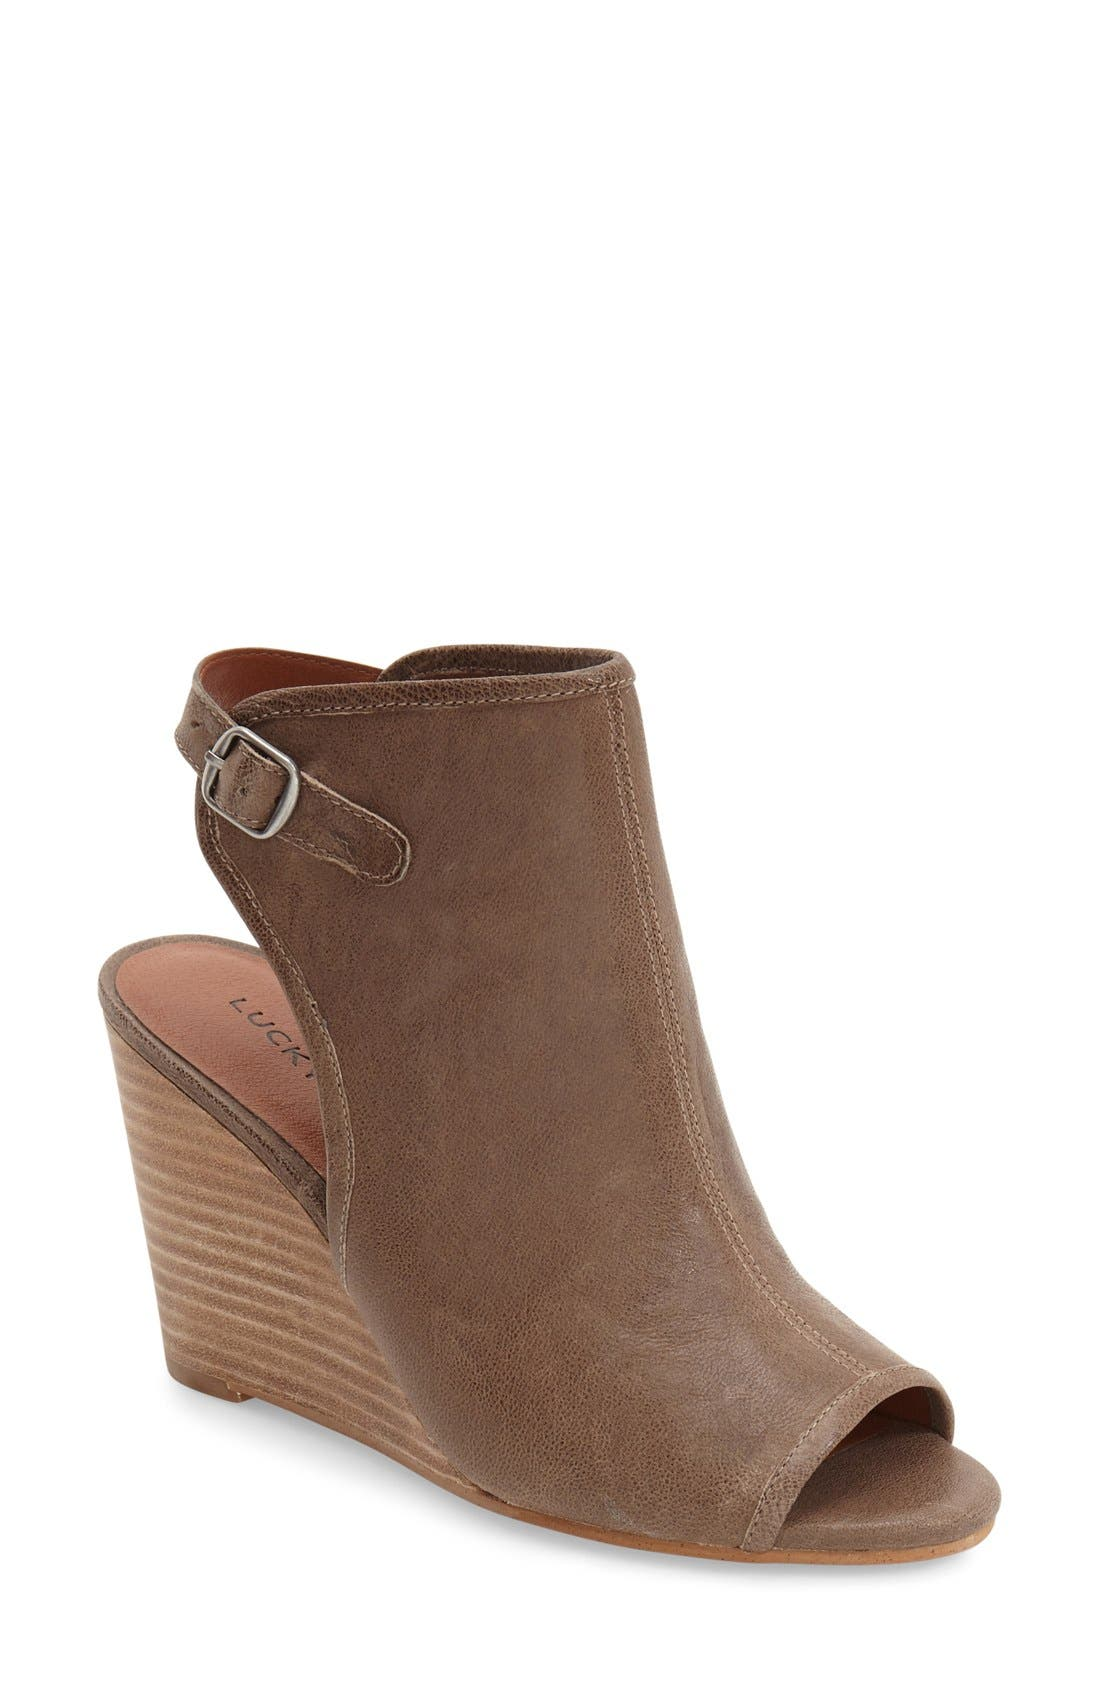 Alternate Image 1 Selected - Lucky Brand 'Risza' Open Toe Wedge Bootie (Women)